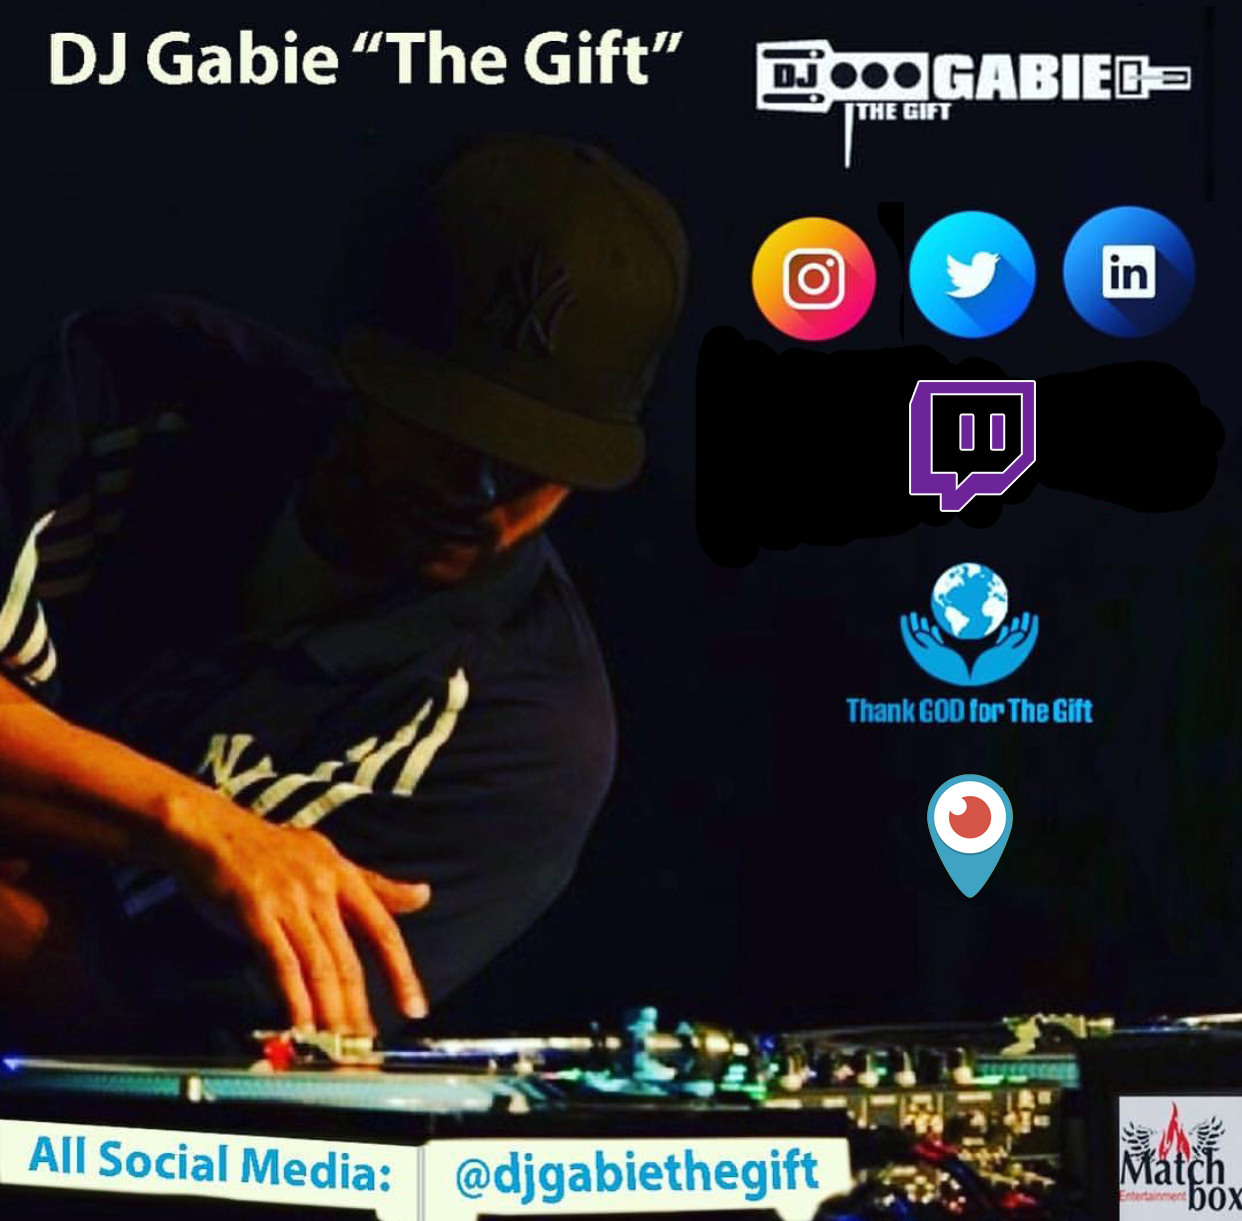 DJ 'The Gift' Gabie